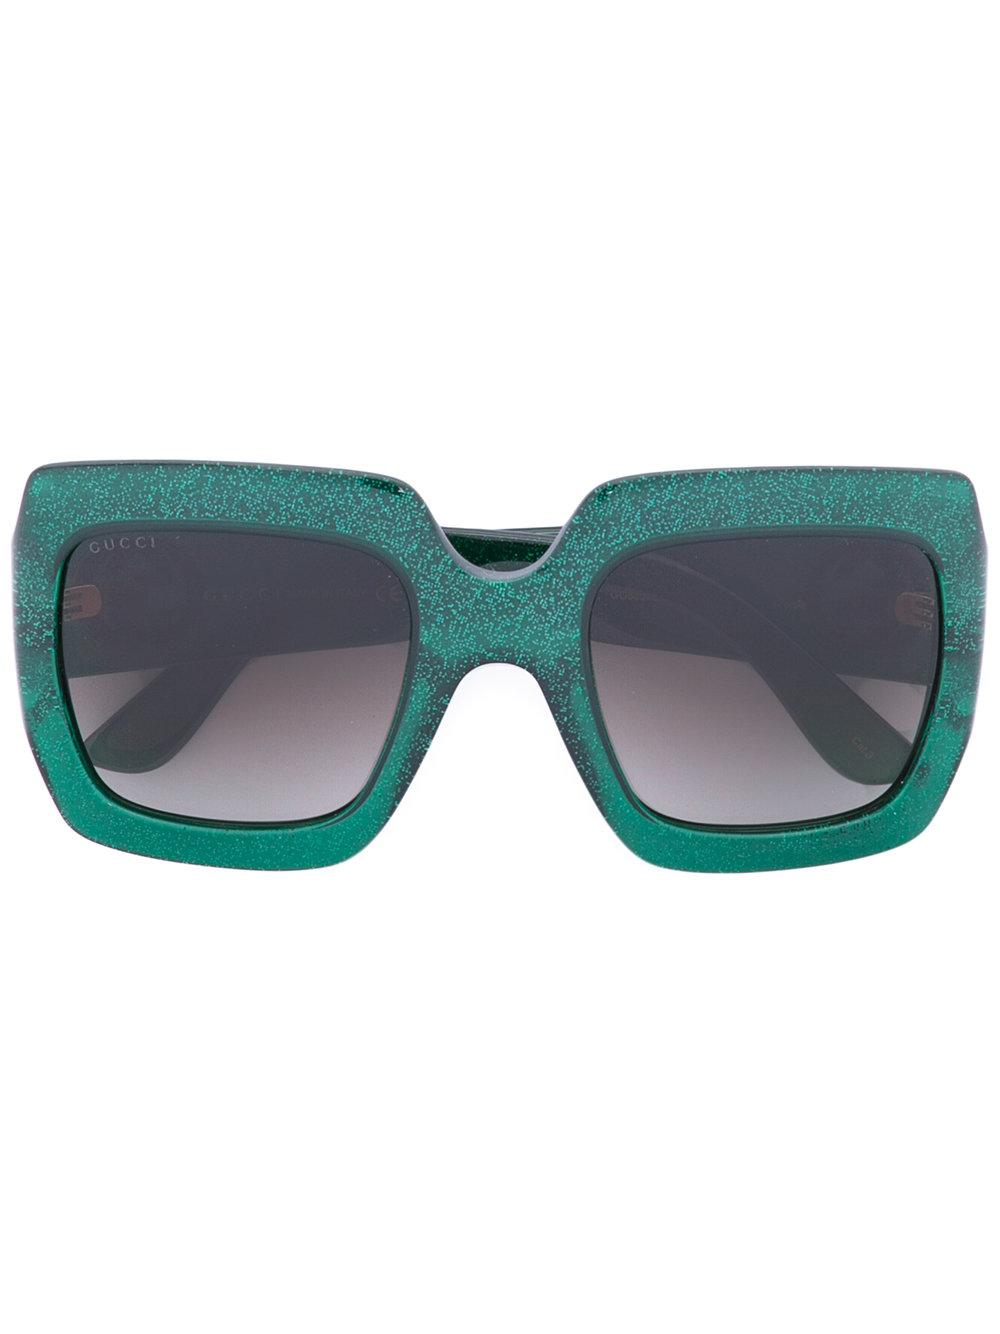 Gucci Oversize Square Frame Sunglasses in Green Lyst